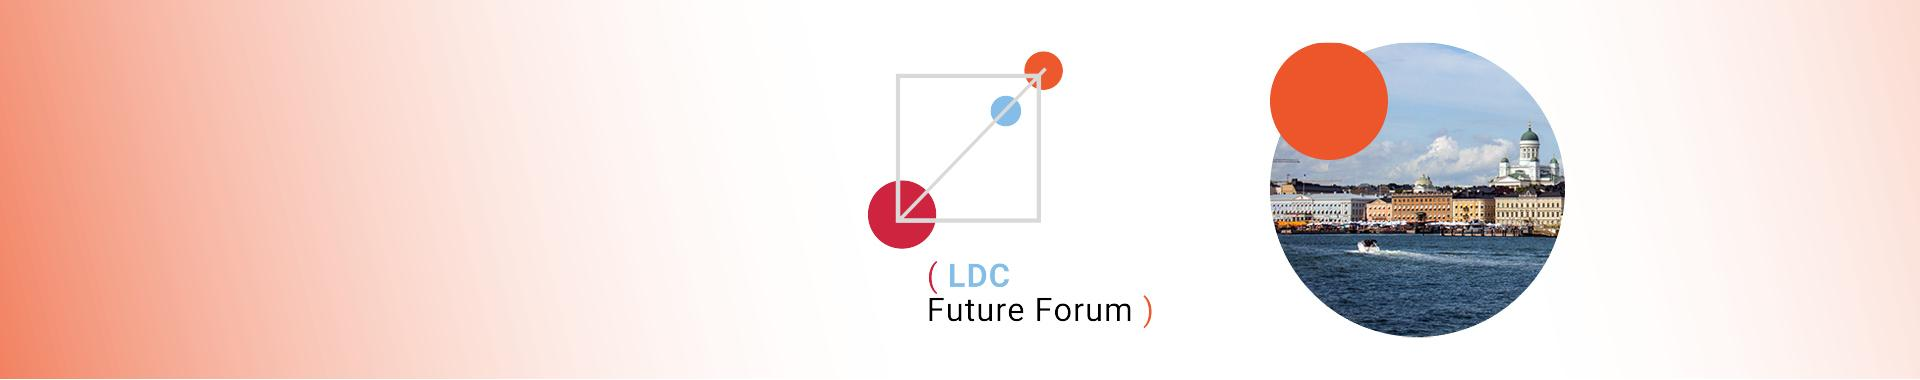 Achieving Sustainable Development in the Least Developed Countries – LDC Future Forum